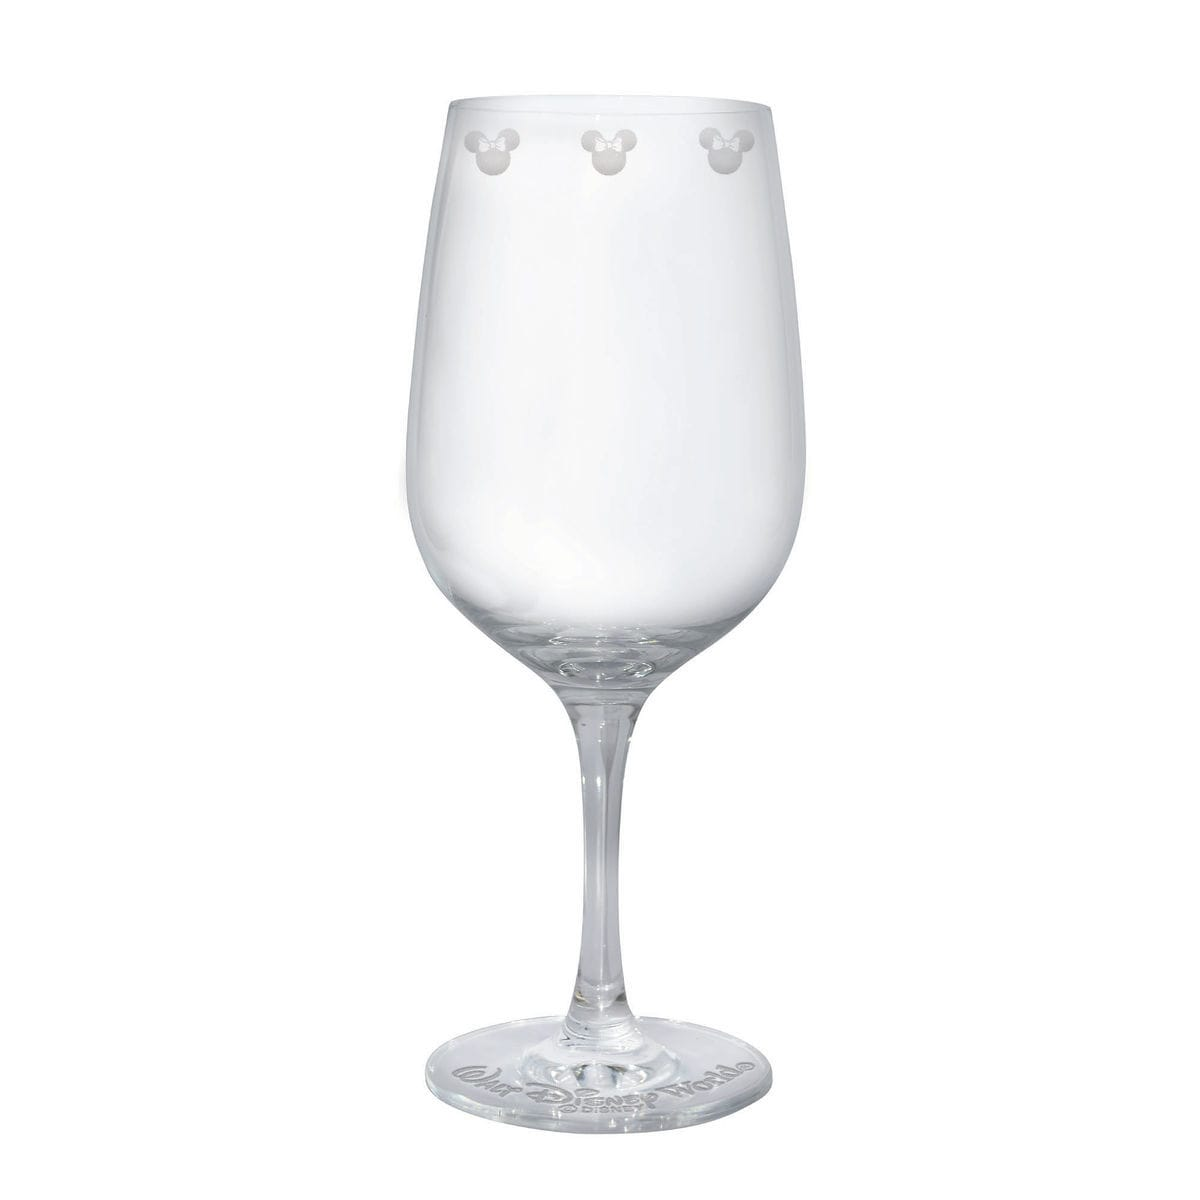 Minnie Mouse Icon Wine Glass by Arribas - Personalizable | shopDisney